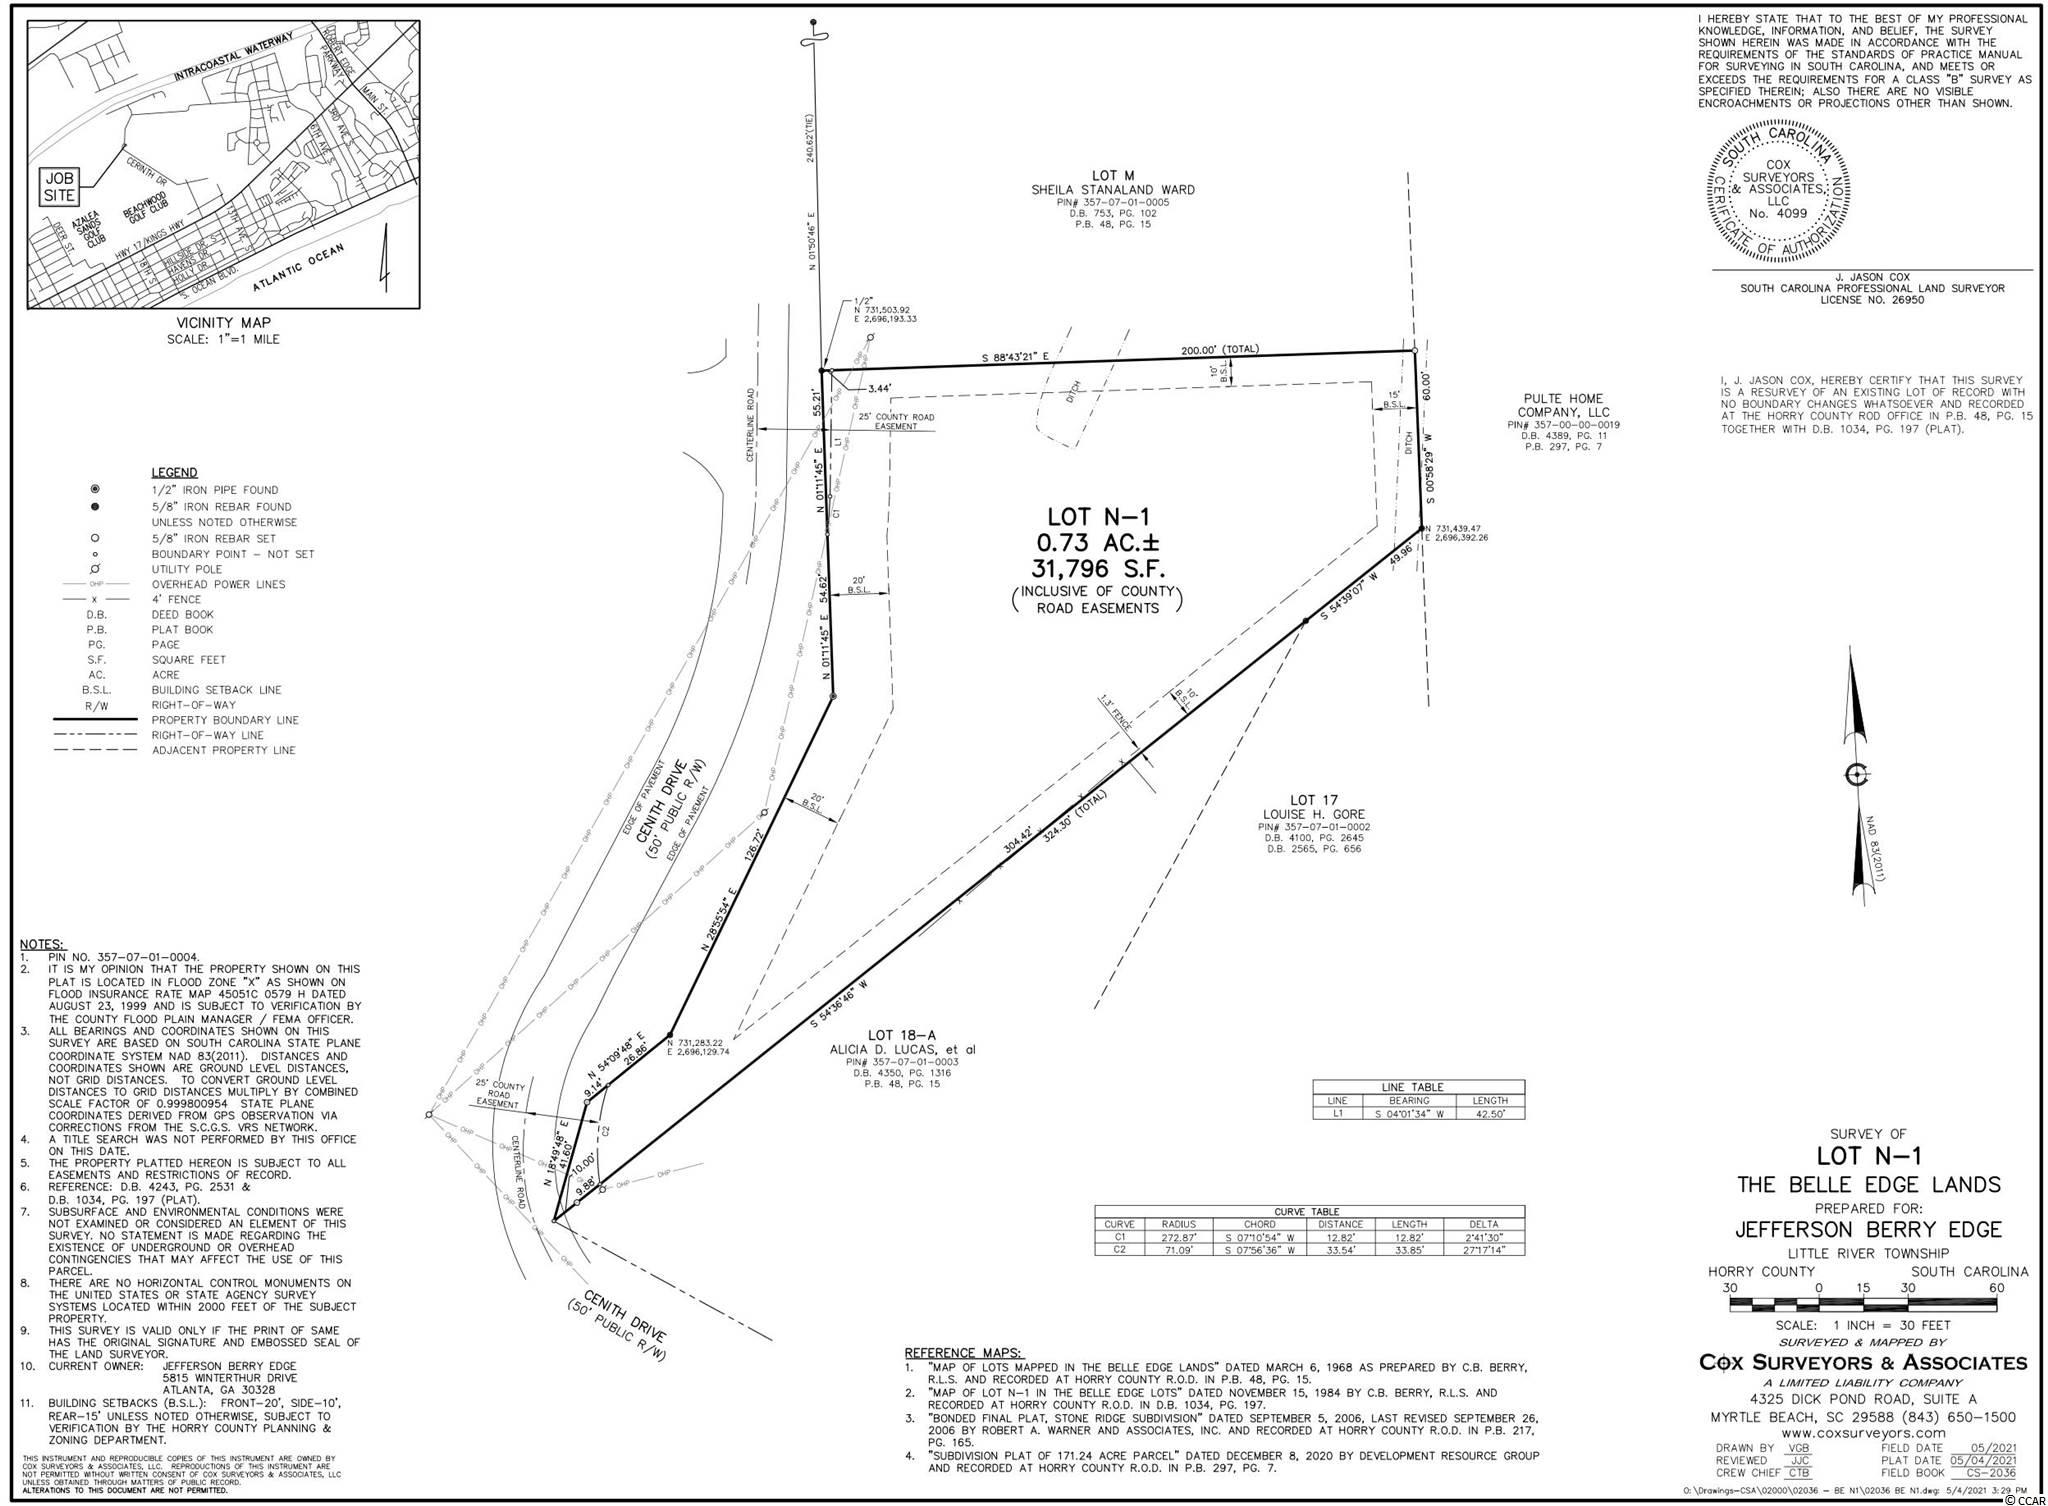 The One You've Been Waiting For! Take A Look At This Beautiful Residential Lot Zoned GR For A Single Family Home, Duplex or Multifamily! No HOA! Not In The City Limits! Pay County Taxes Until You Build! Ideal For A Quiet Country Setting So Close To Everything NMB has to offer! Located Between Hwy 17 and the Intracoastal Waterway! Call Today! Don't Miss This One!  Golf Cart Ride To The Beach, Pharmacy, Bank, Post Office, Church, City Hall, Aquatic Center, Shopping, Dining and Lots More! Super Convenient Location!